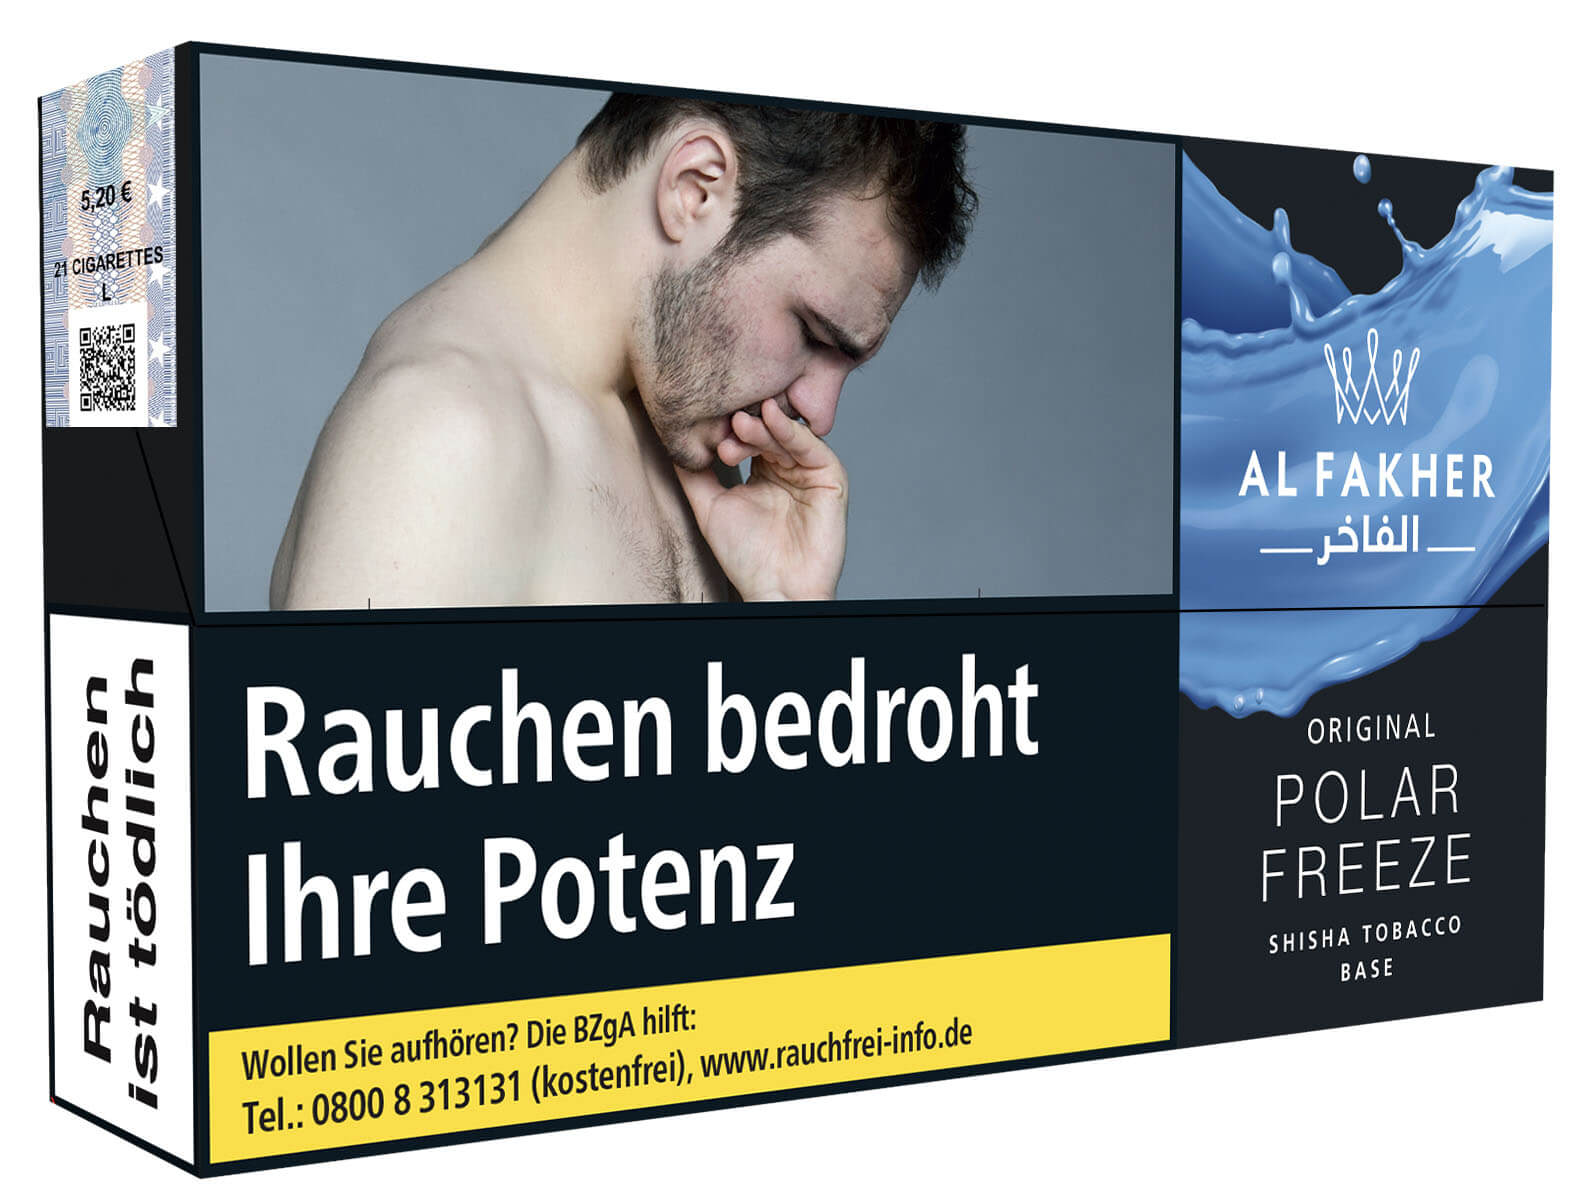 Al Fakher Tabak Polar Freeze 100g